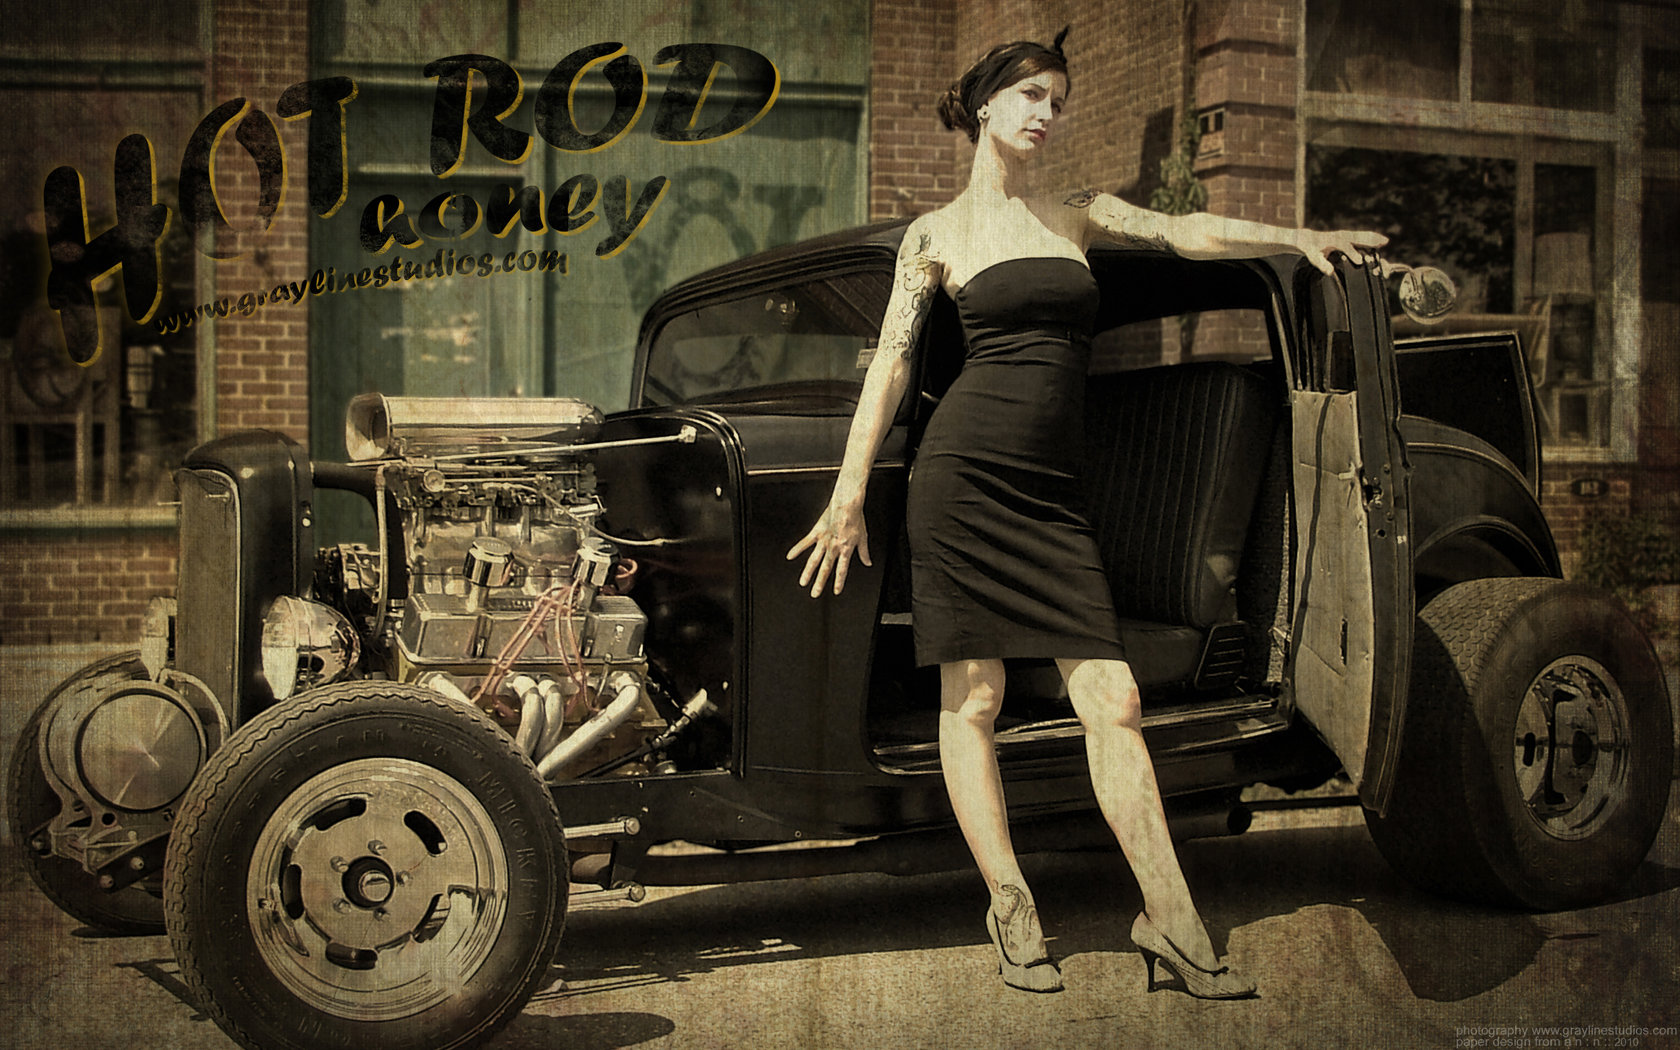 Awesome Hot Rod Free Wallpaper Id Hot Rod Photo Backgrounds 3086509 Hd Wallpaper Backgrounds Download